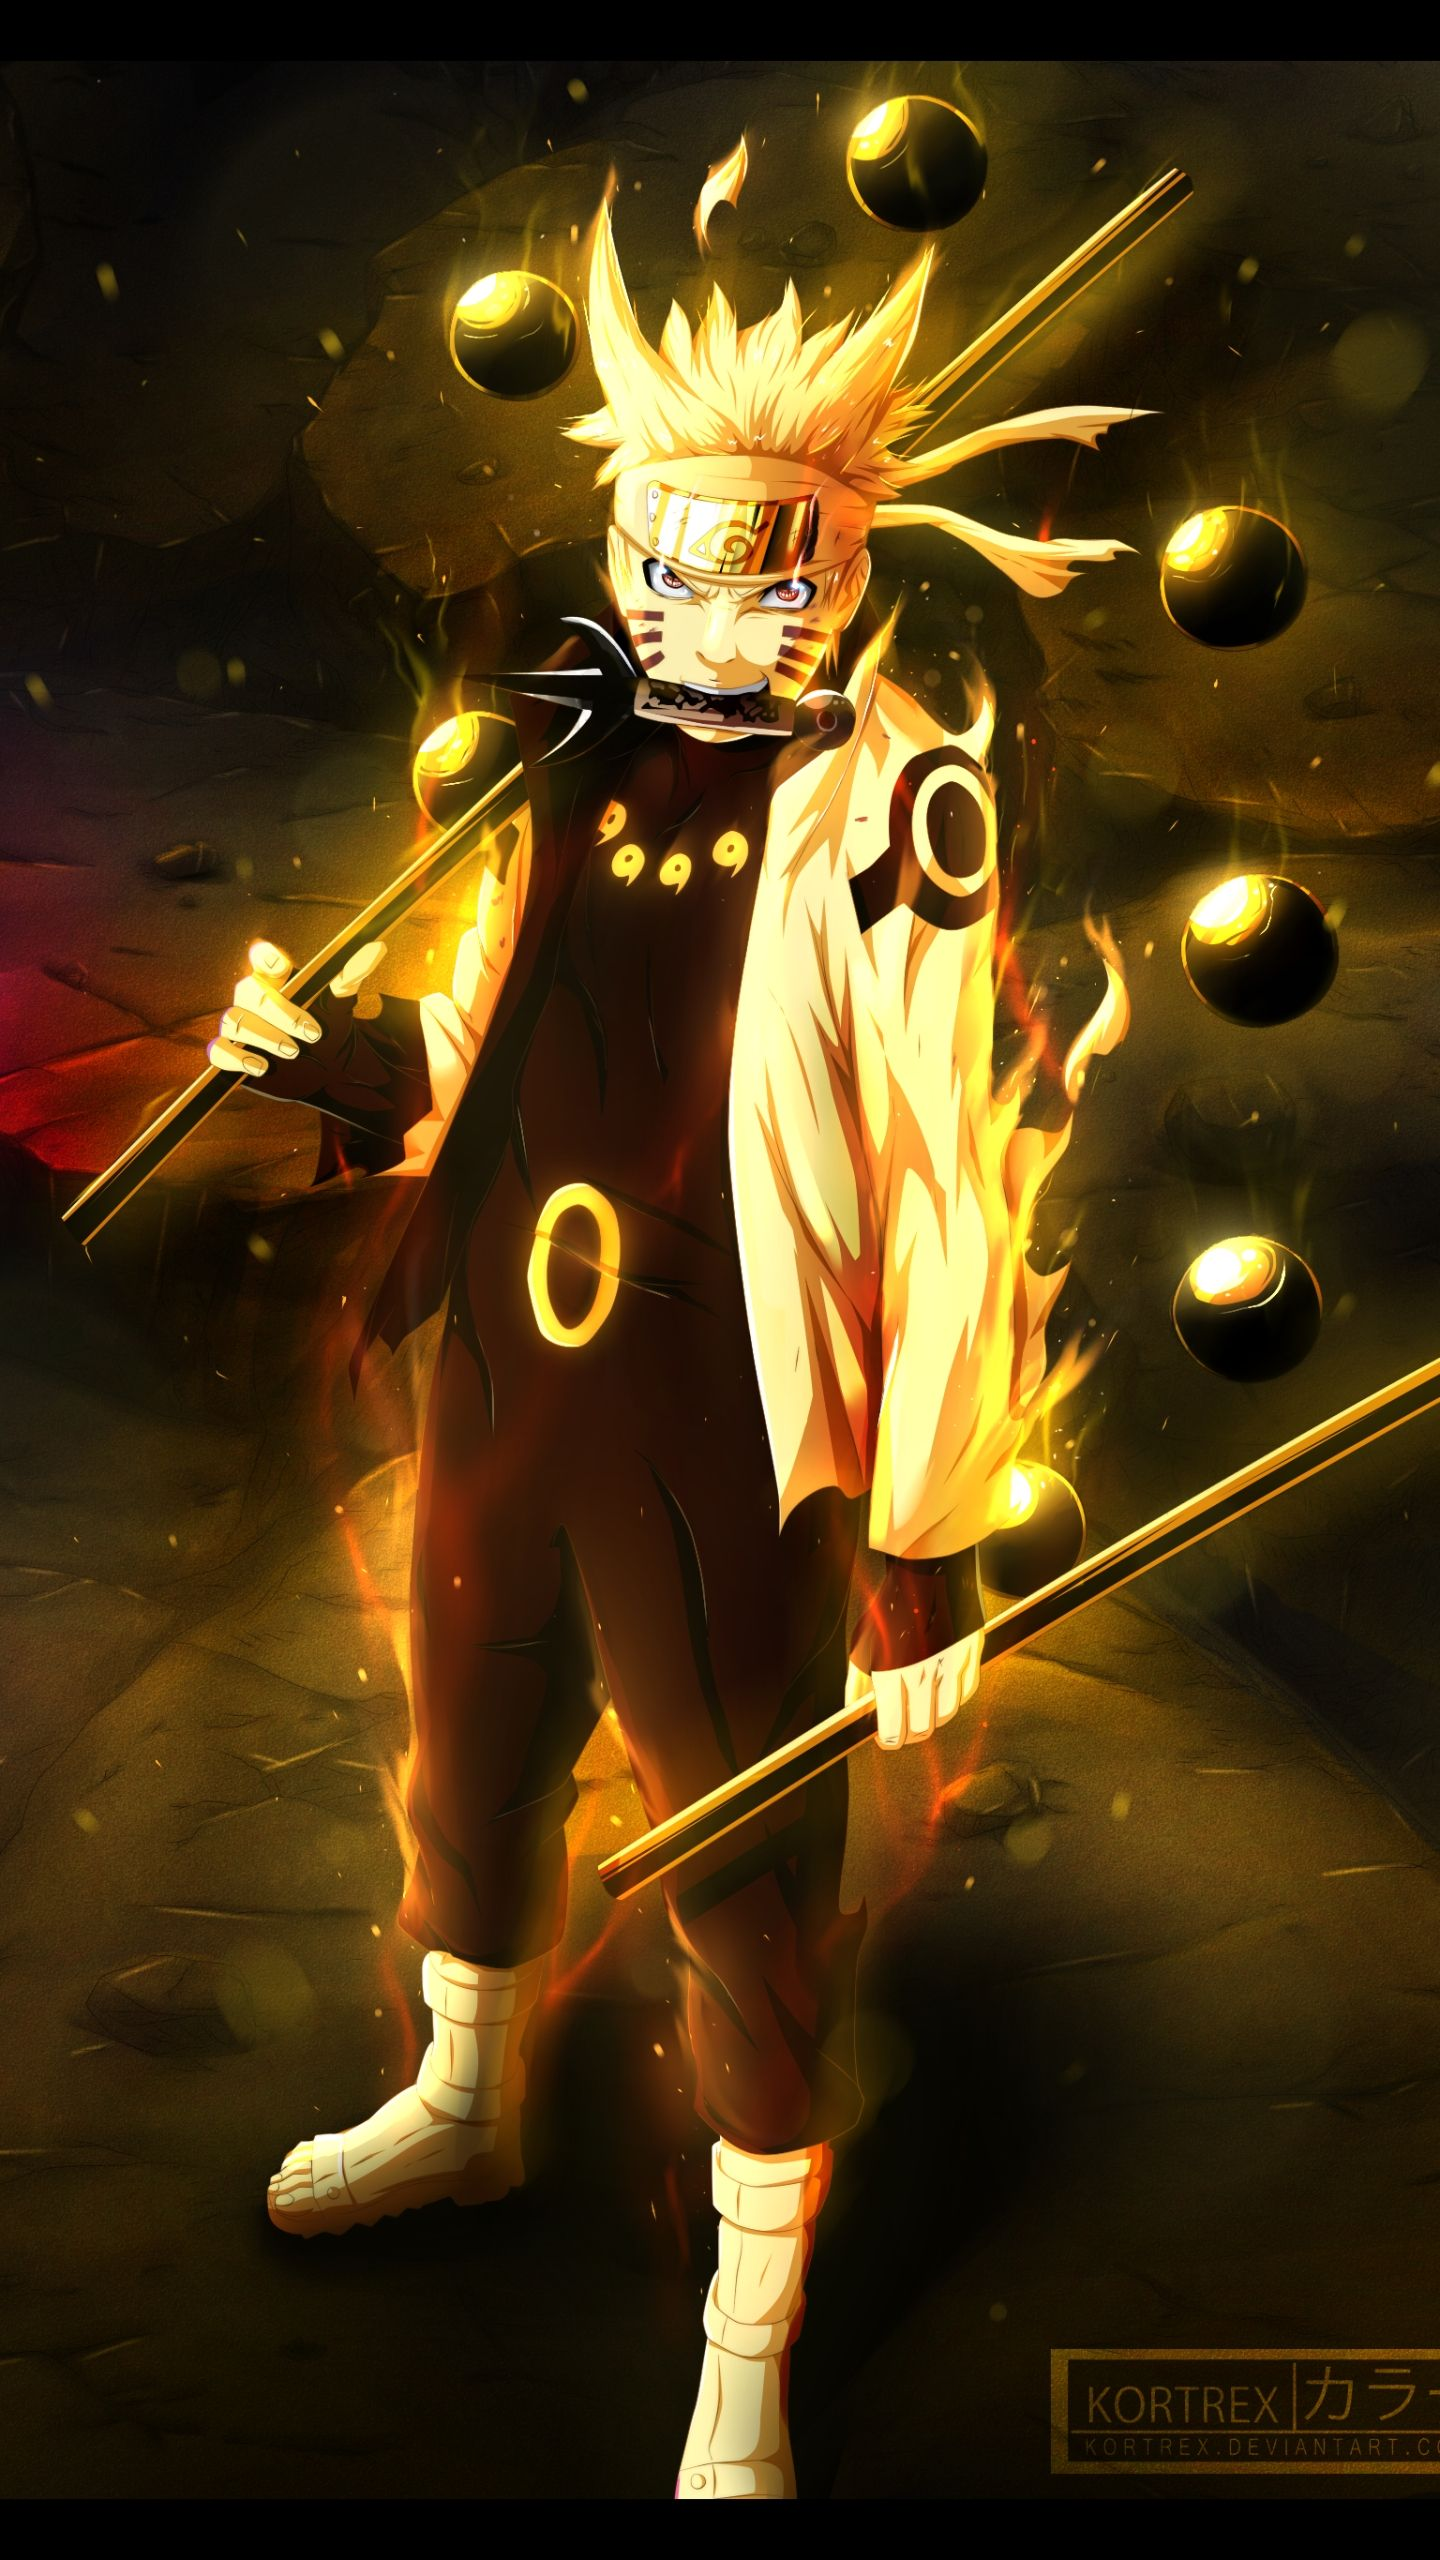 naruto wallpaper iphone 6  Naruto Wallpaper Iphone 6 - Download Best Naruto Wallpaper Iphone ...